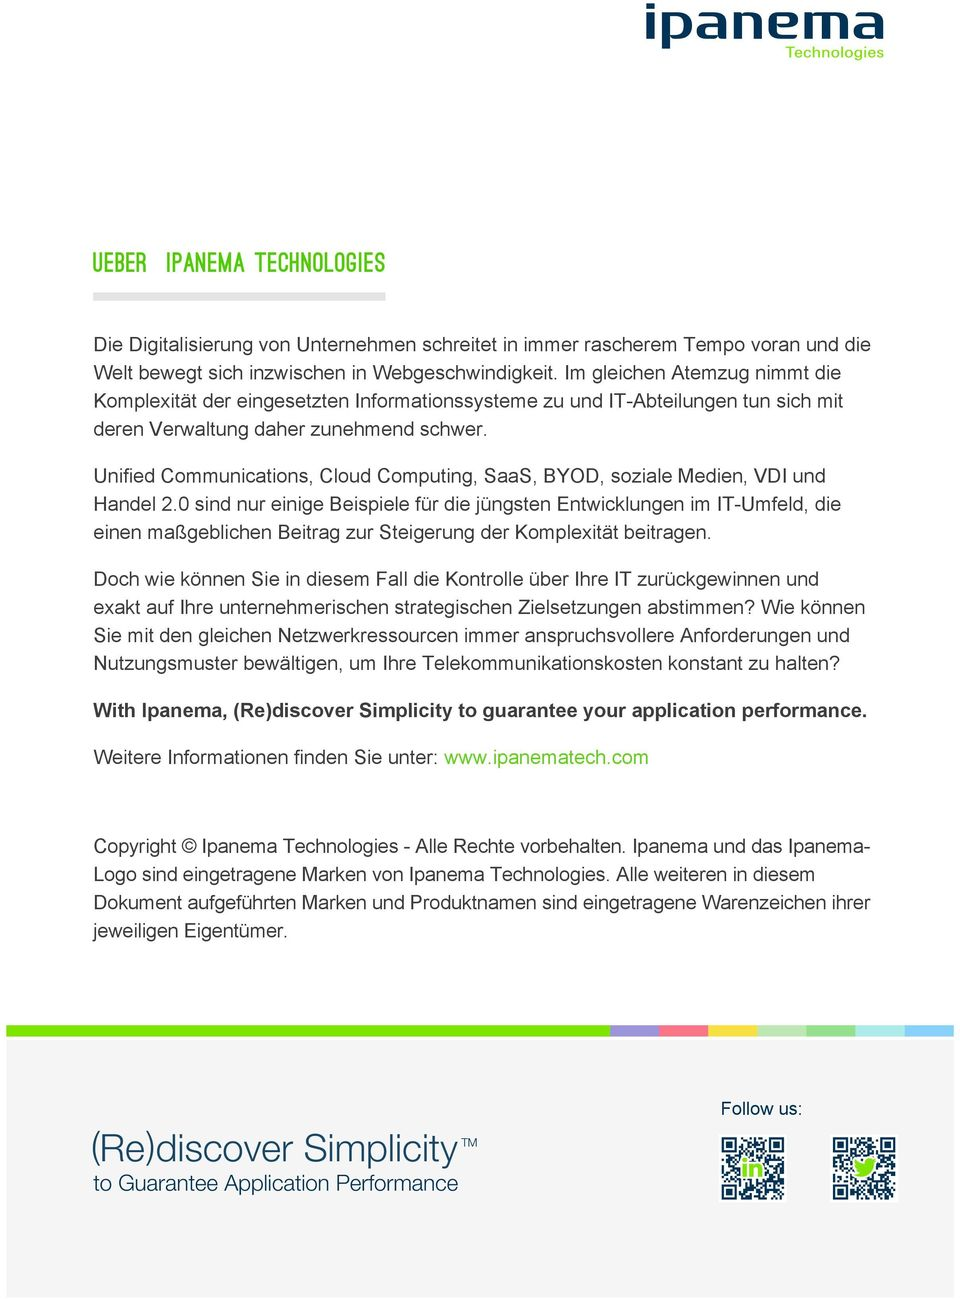 Unified Communications, Cloud Computing, SaaS, BYOD, soziale Medien, VDI und Handel 2.